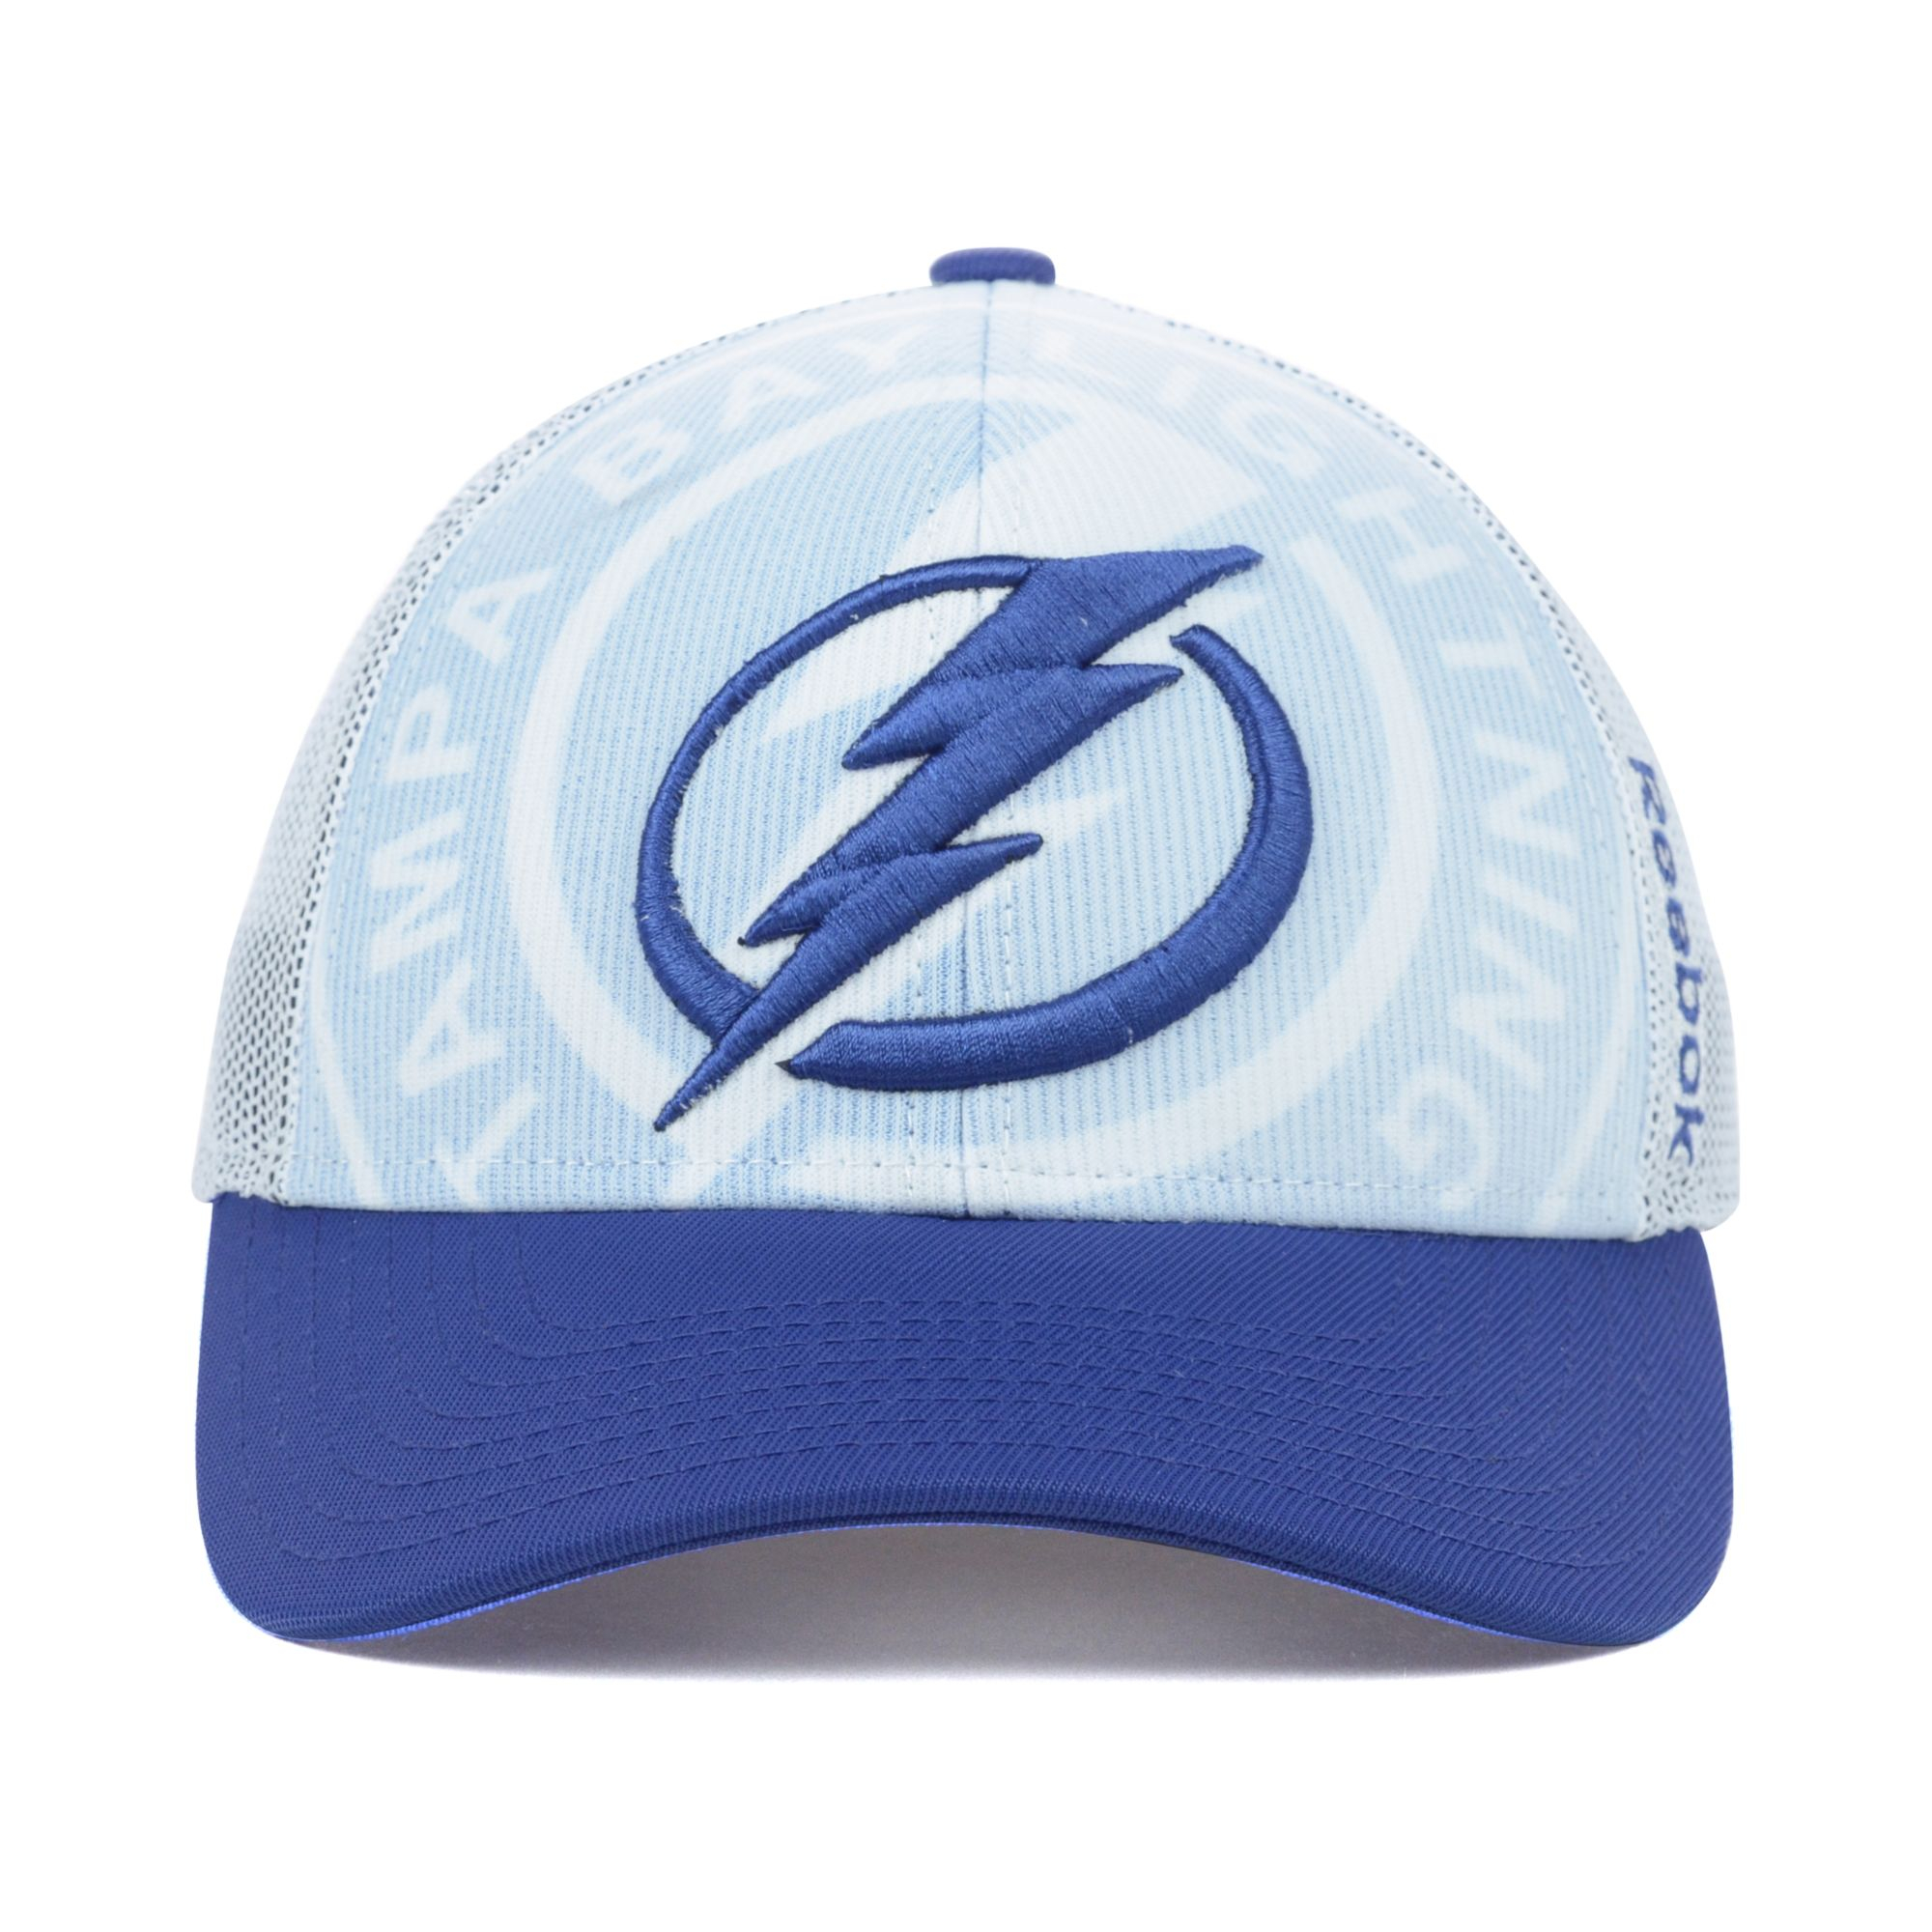 4fa0d8670c3 Lyst - Reebok Tampa Bay Lightning Nhl Draft Cap in Blue for Men